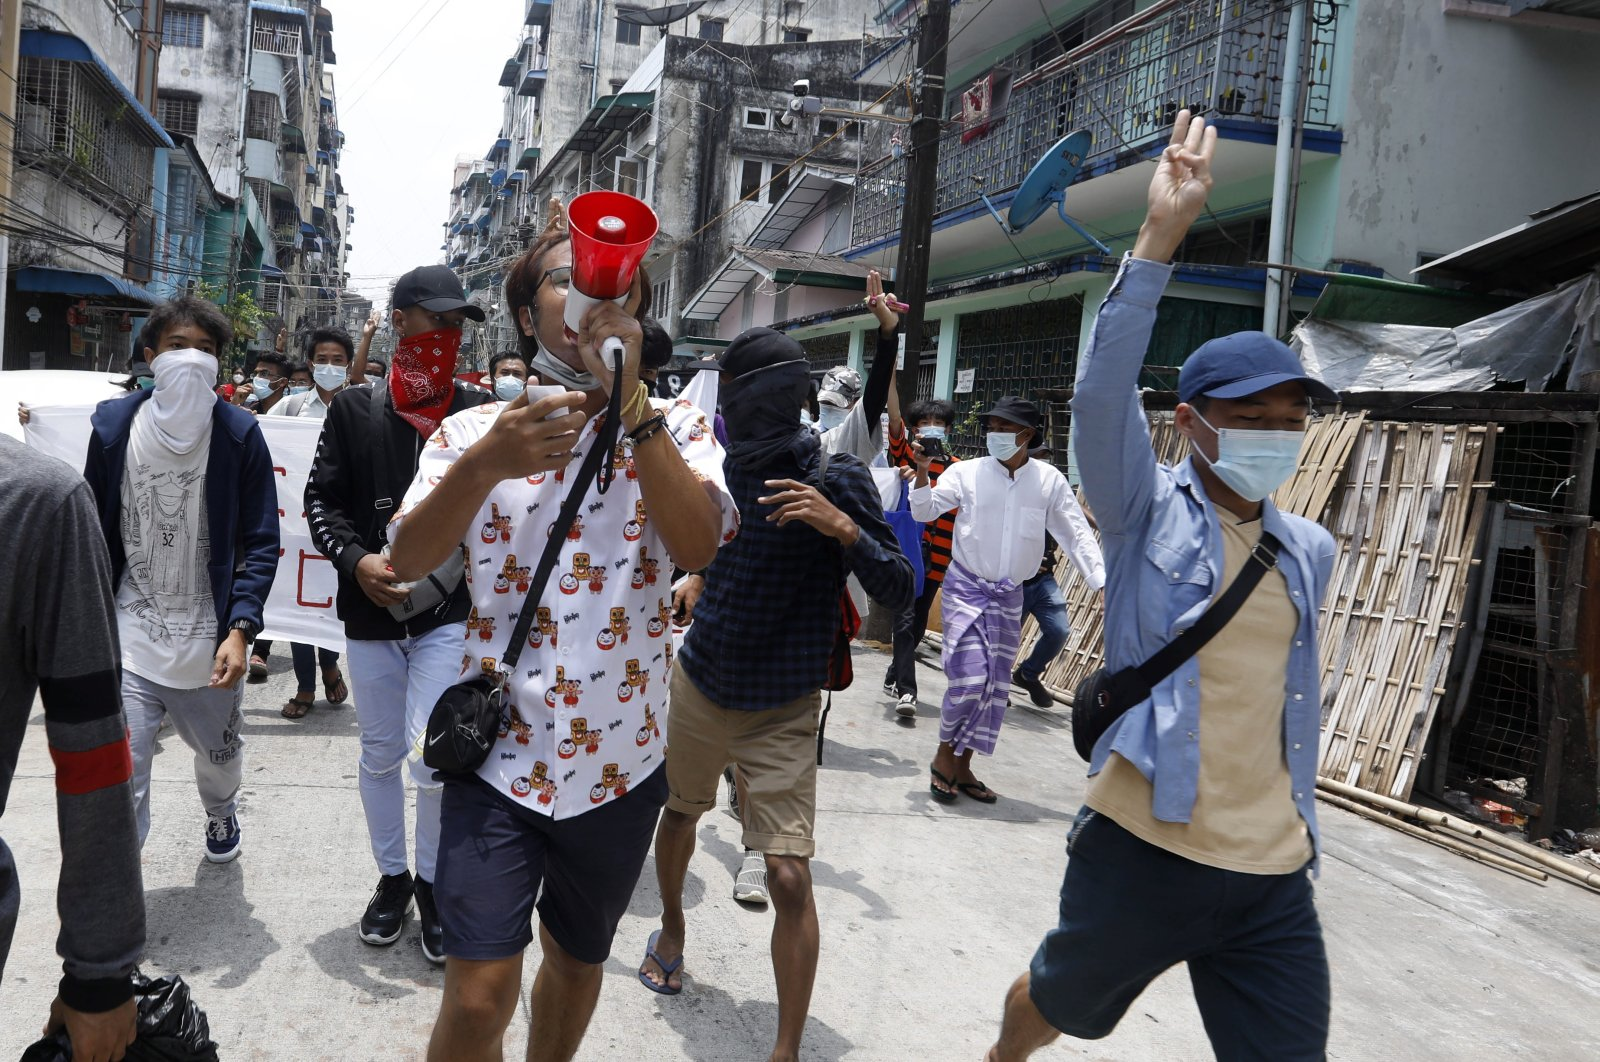 Demonstrators shout slogans and flash the three-fingers salute during an anti-military coup protest in Yangon, Myanmar, April 27, 2021. (EPA Photo)